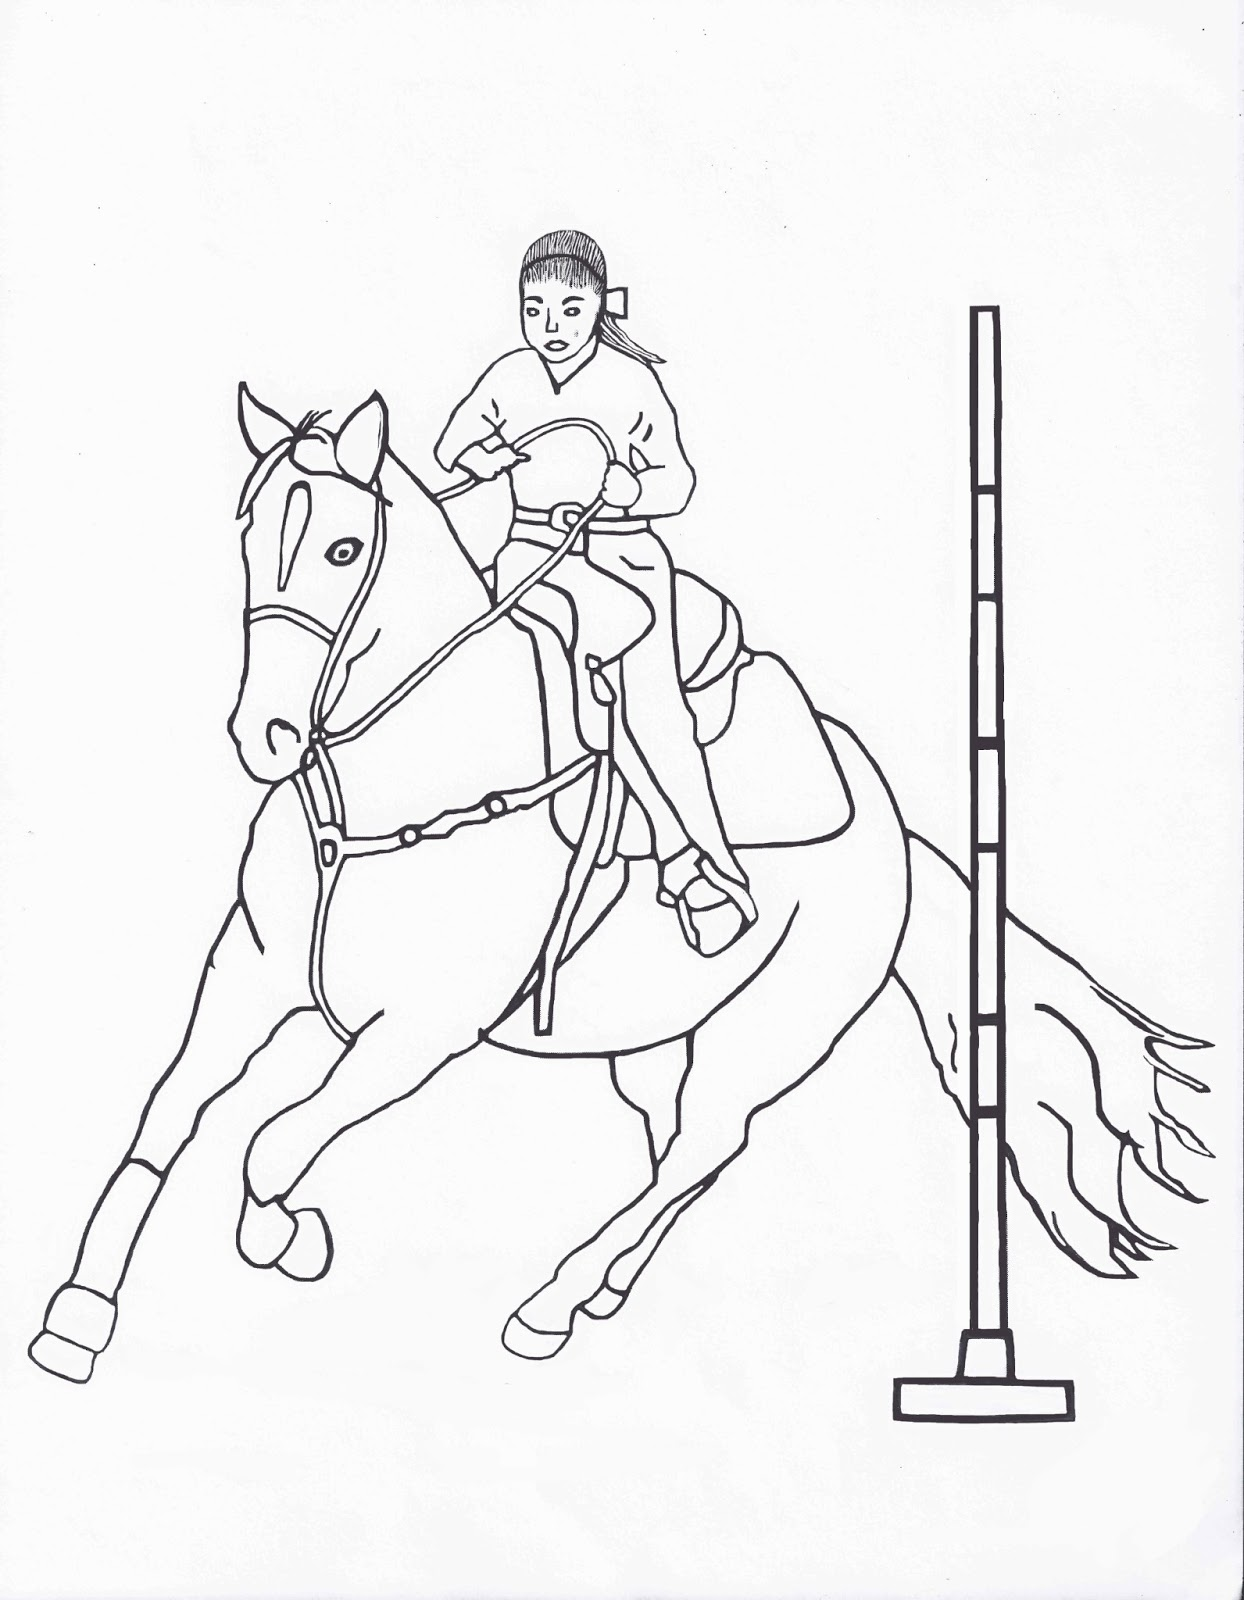 barrel racing coloring pages - photo#20